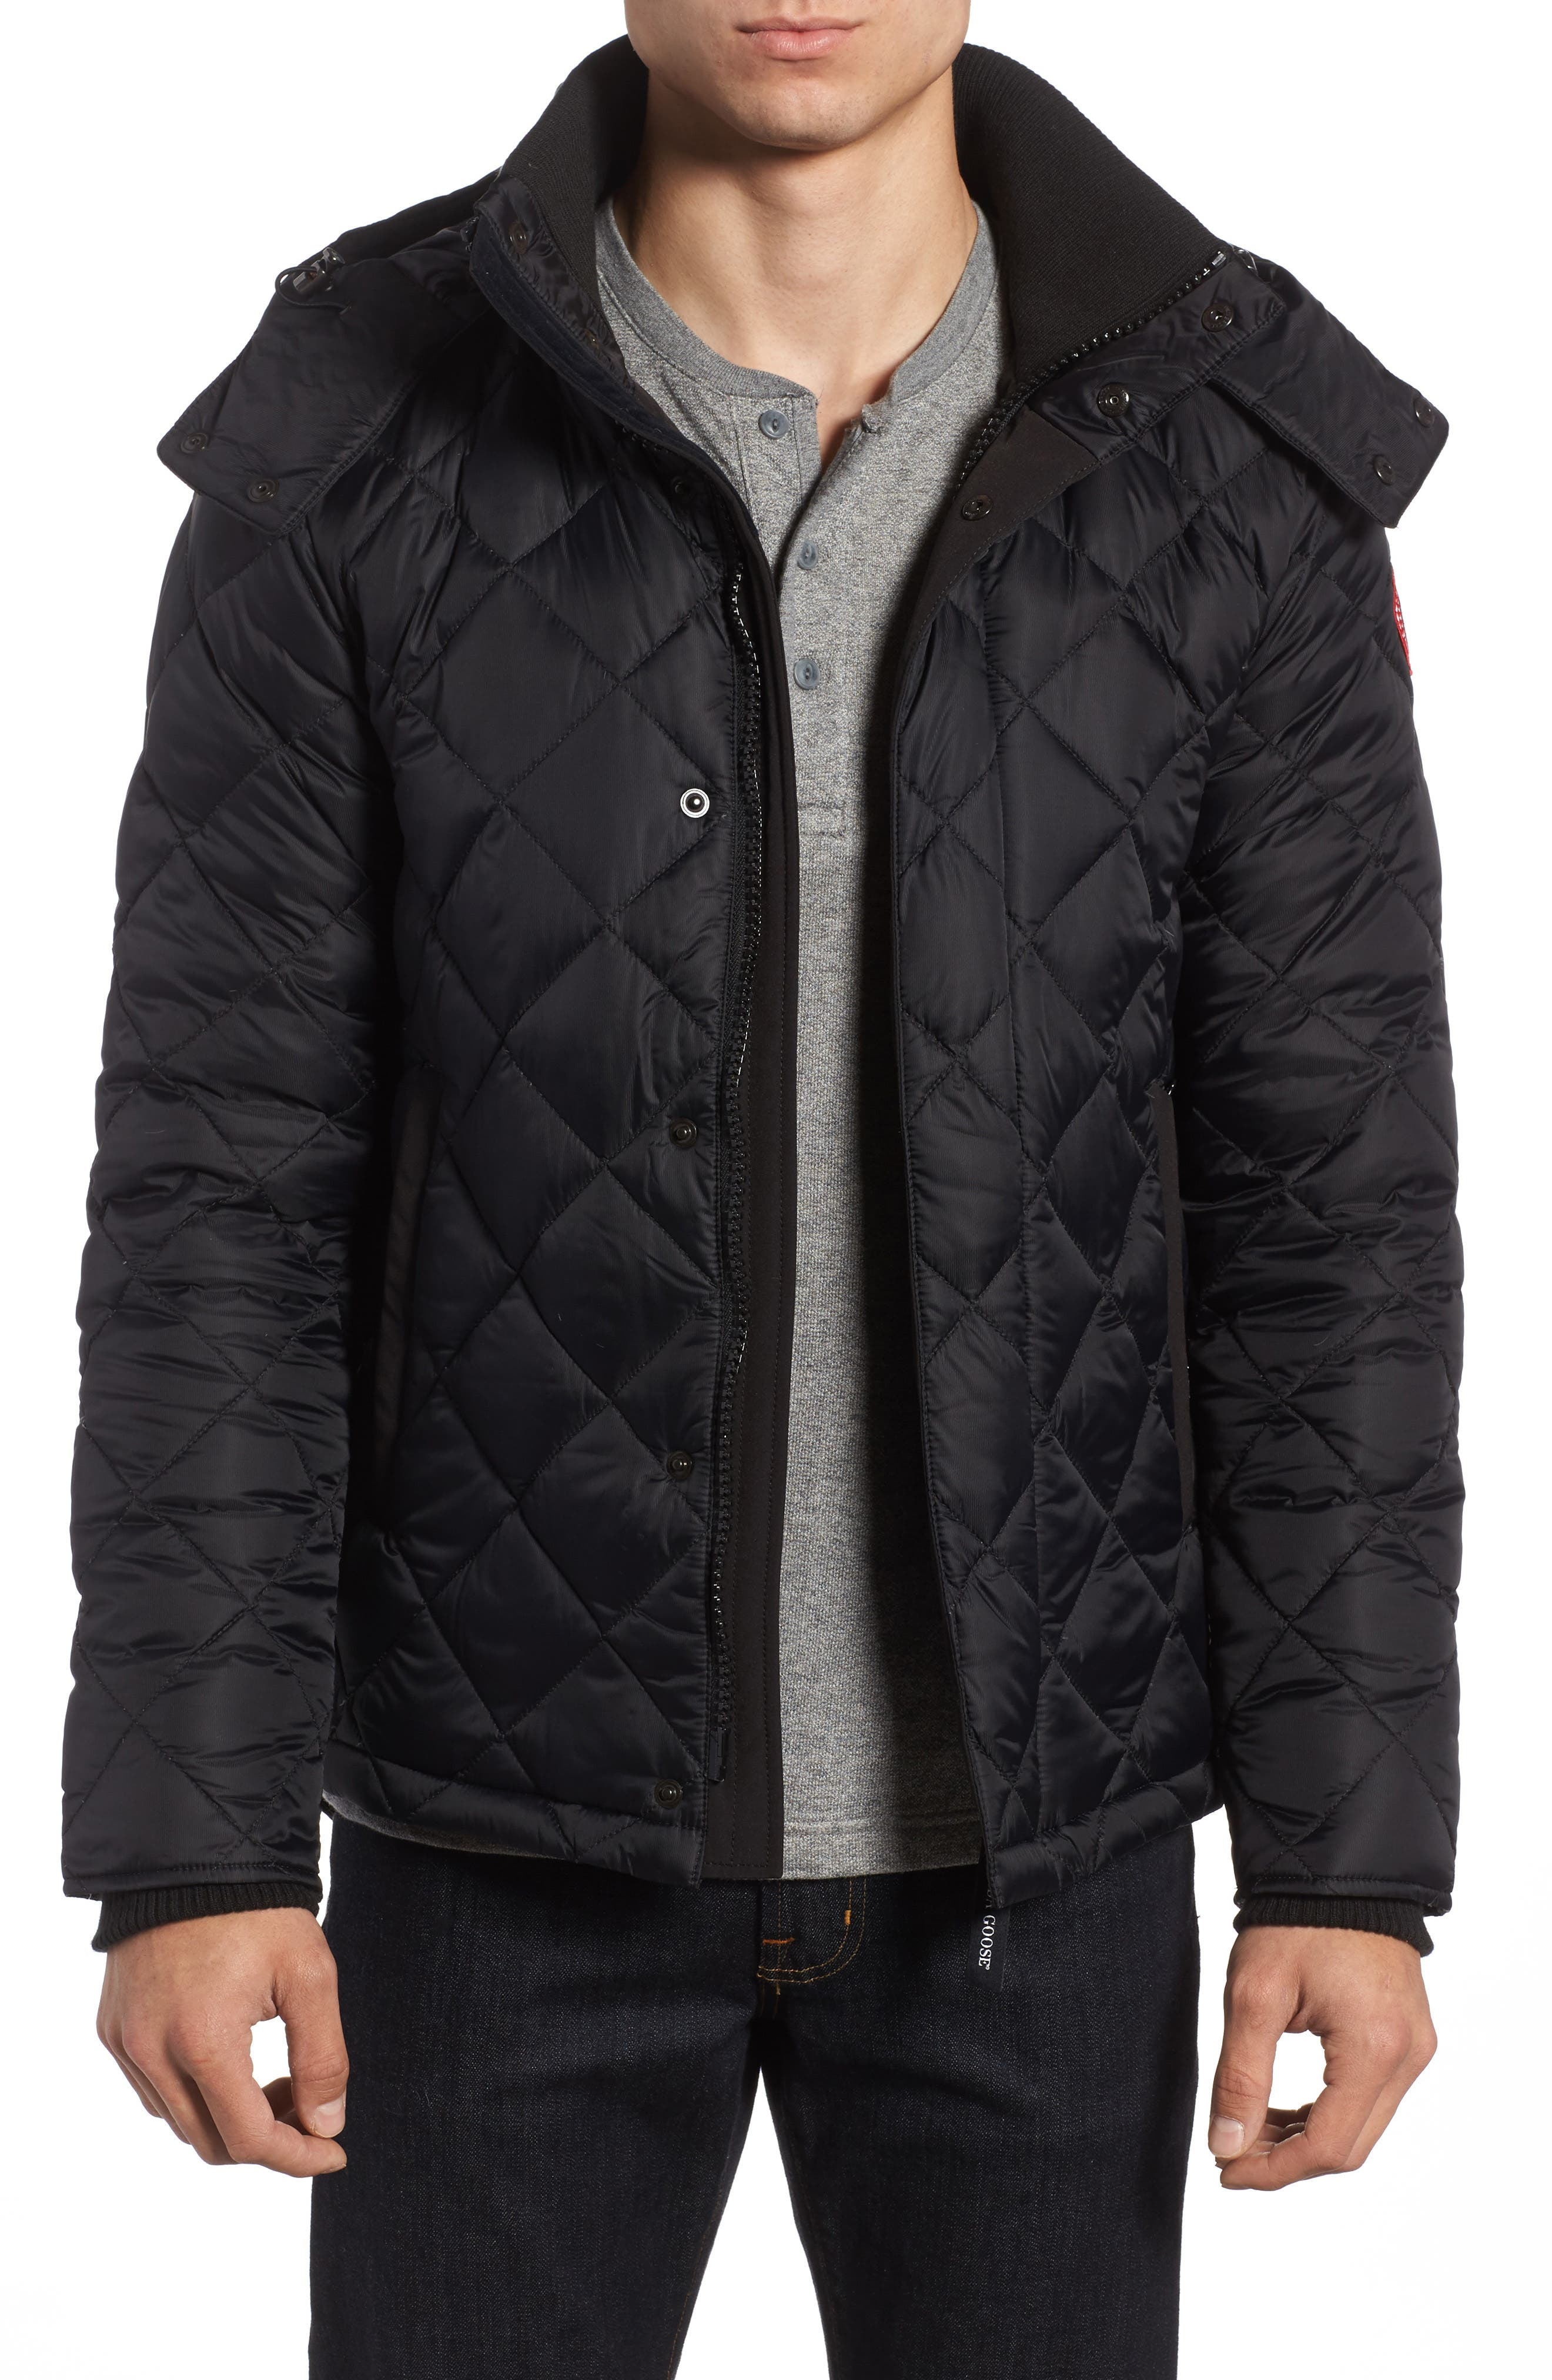 Hendriksen Slim Fit Quilted Down Coat,                         Main,                         color, 001